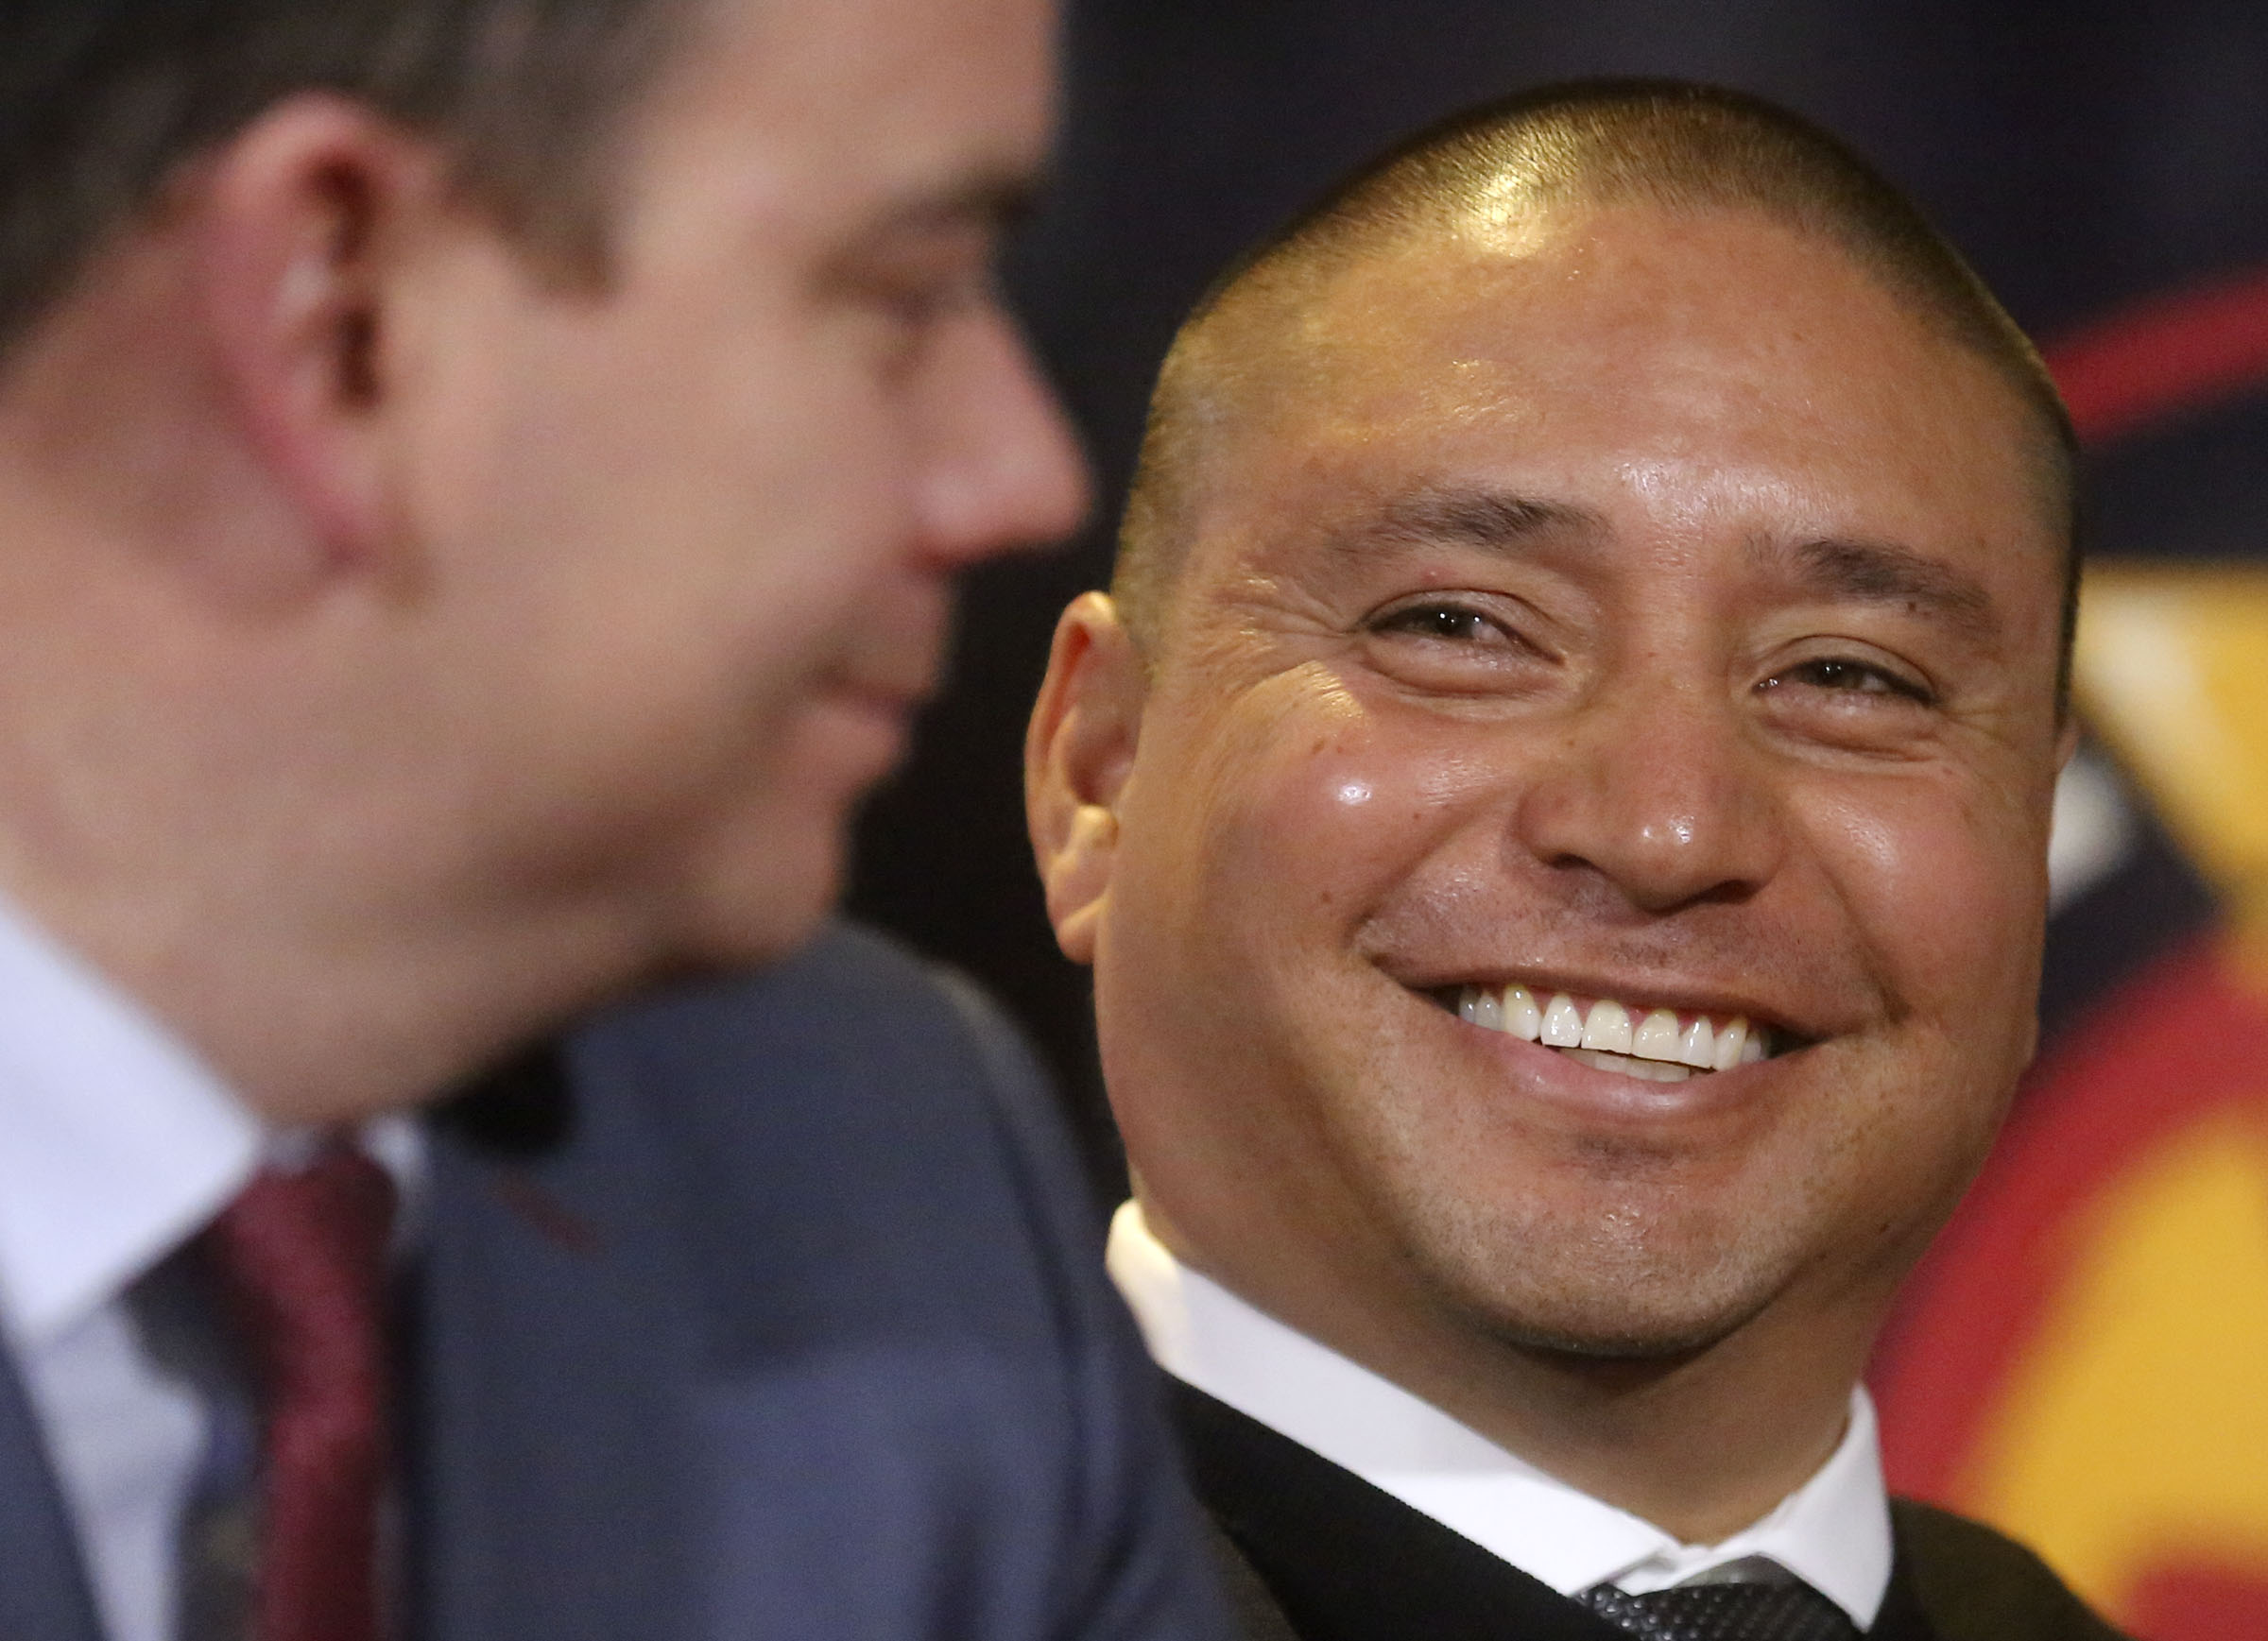 Real Salt Lake head coach Freddy Juarez smiles at Elliot Fall, RSL's general manager, during a press conference to announce their positions at Rio Tinto Stadium in Sandy on Tuesday, Dec. 3, 2019.